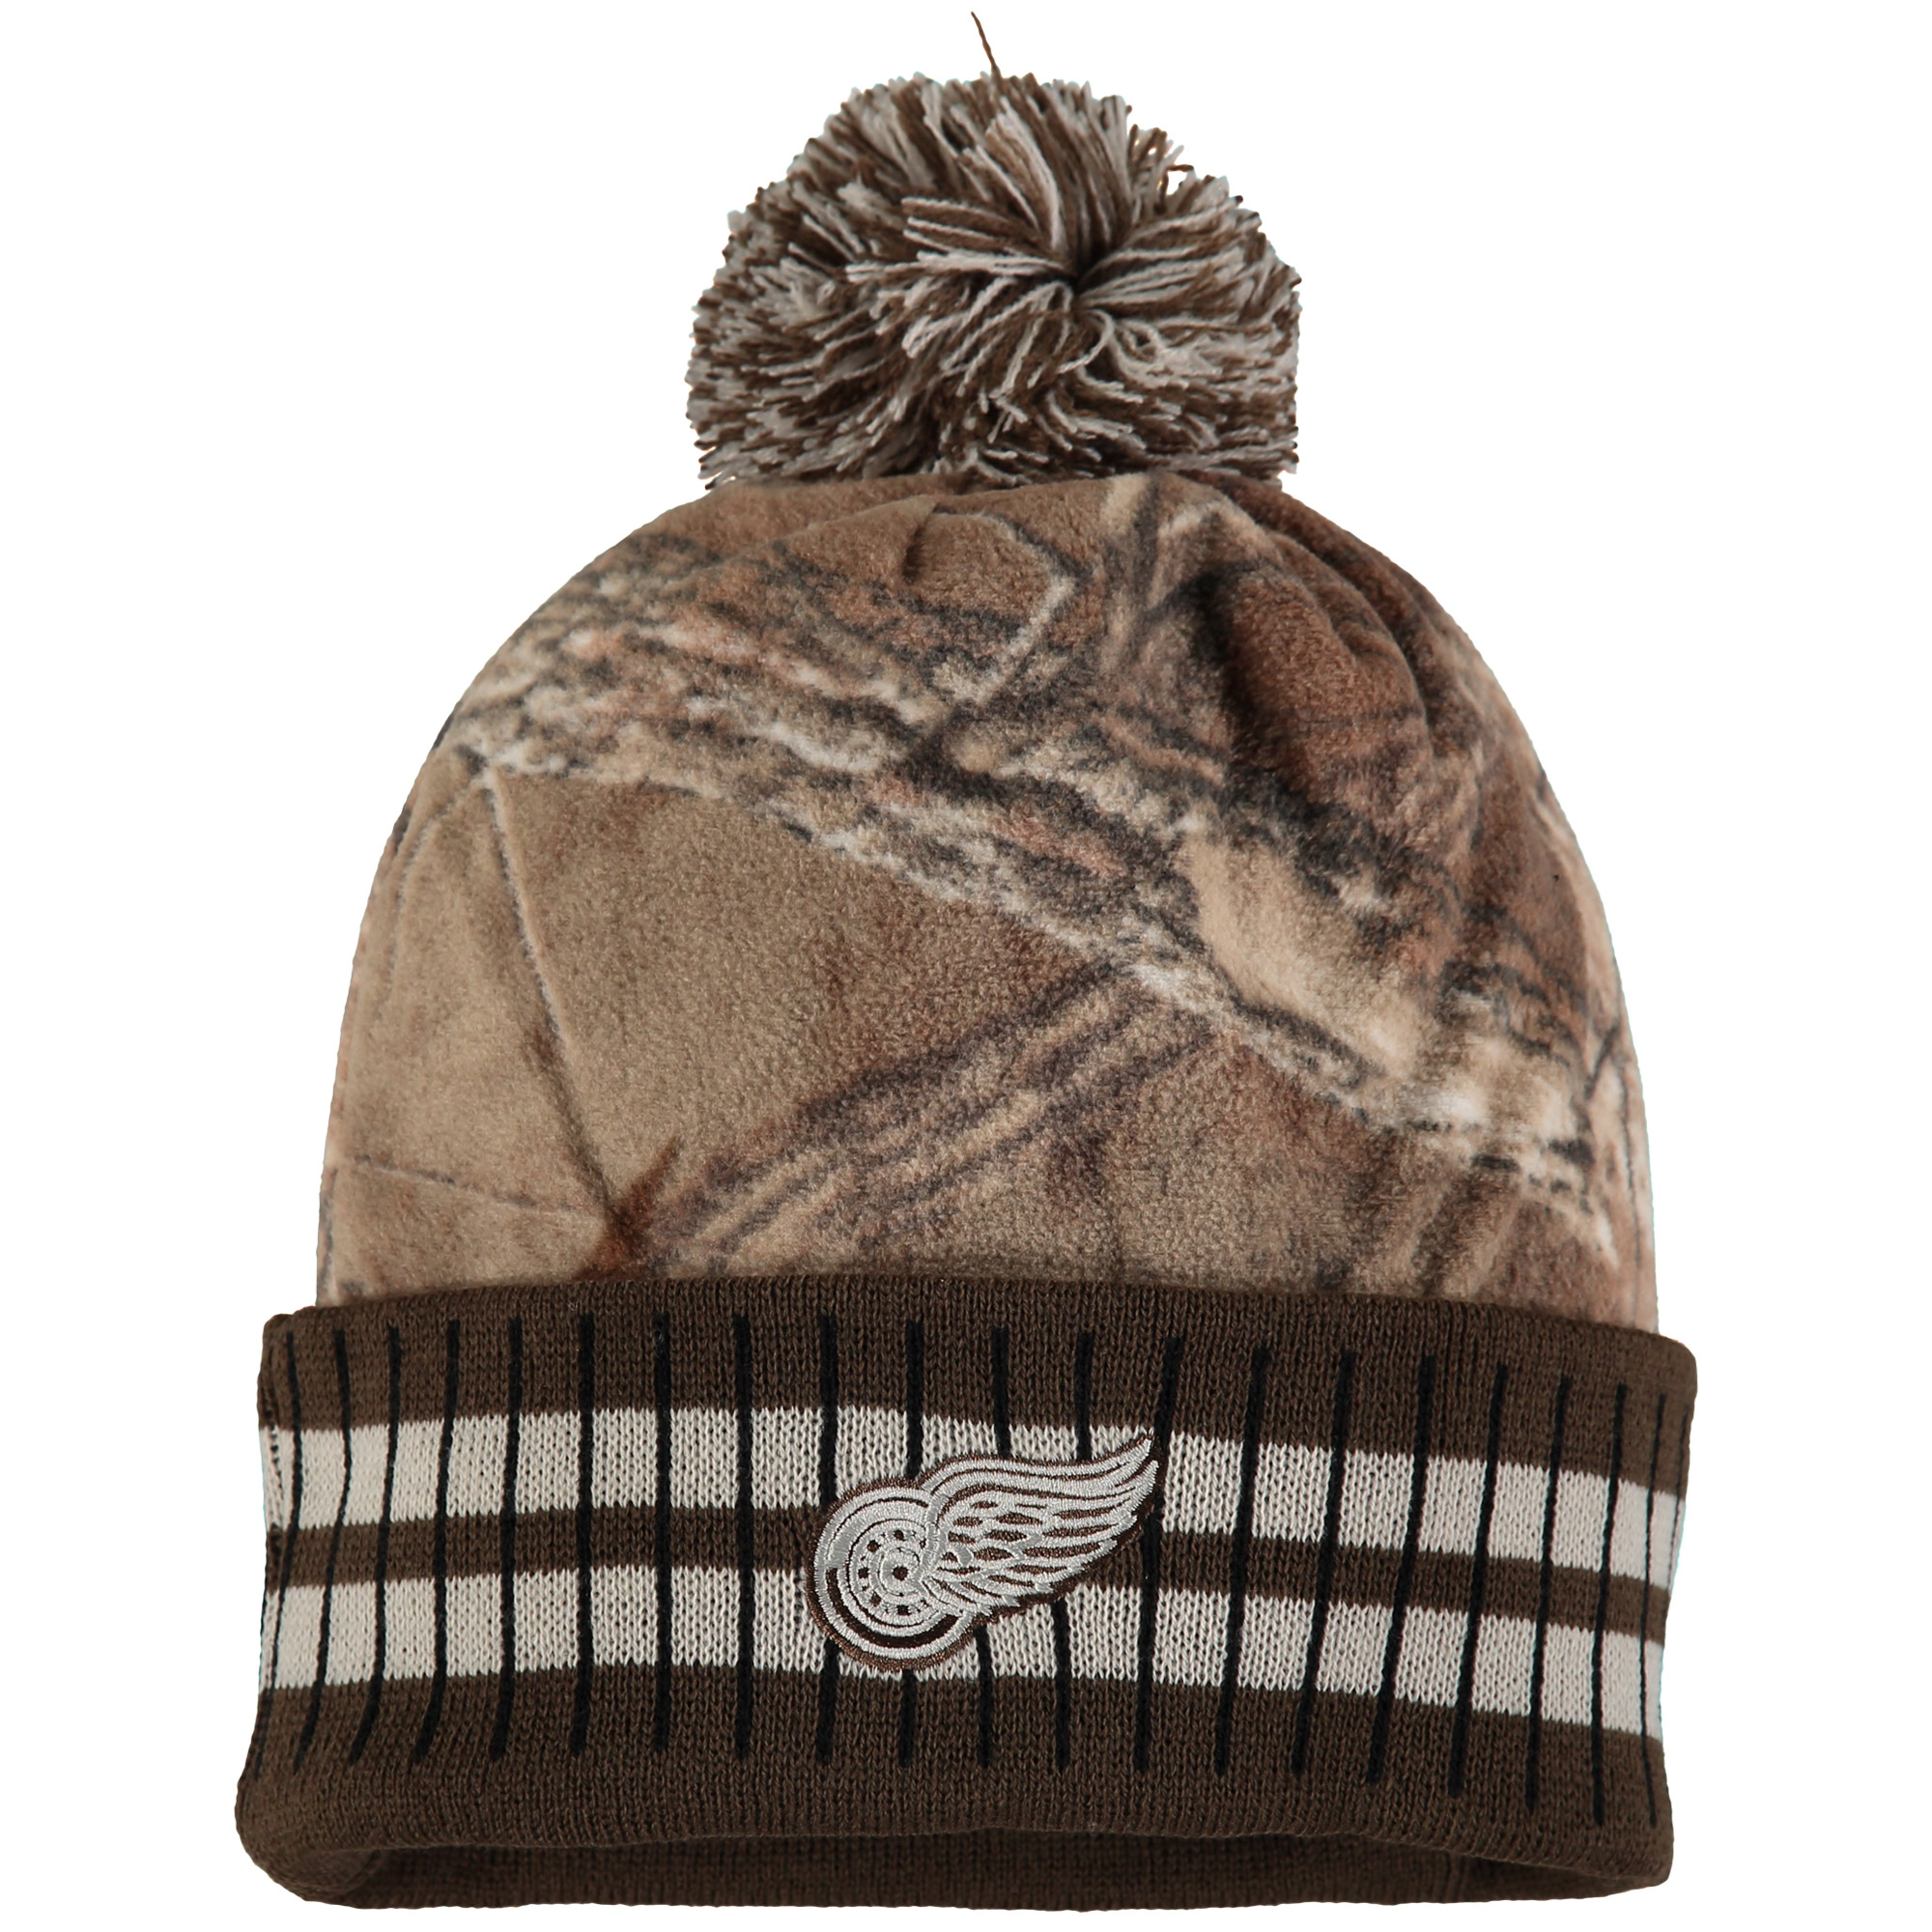 Detroit Red Wings Old Time Hockey Realtree Xtra Cuffed Knit Hat With Pom - Camo/Brown - OSFA